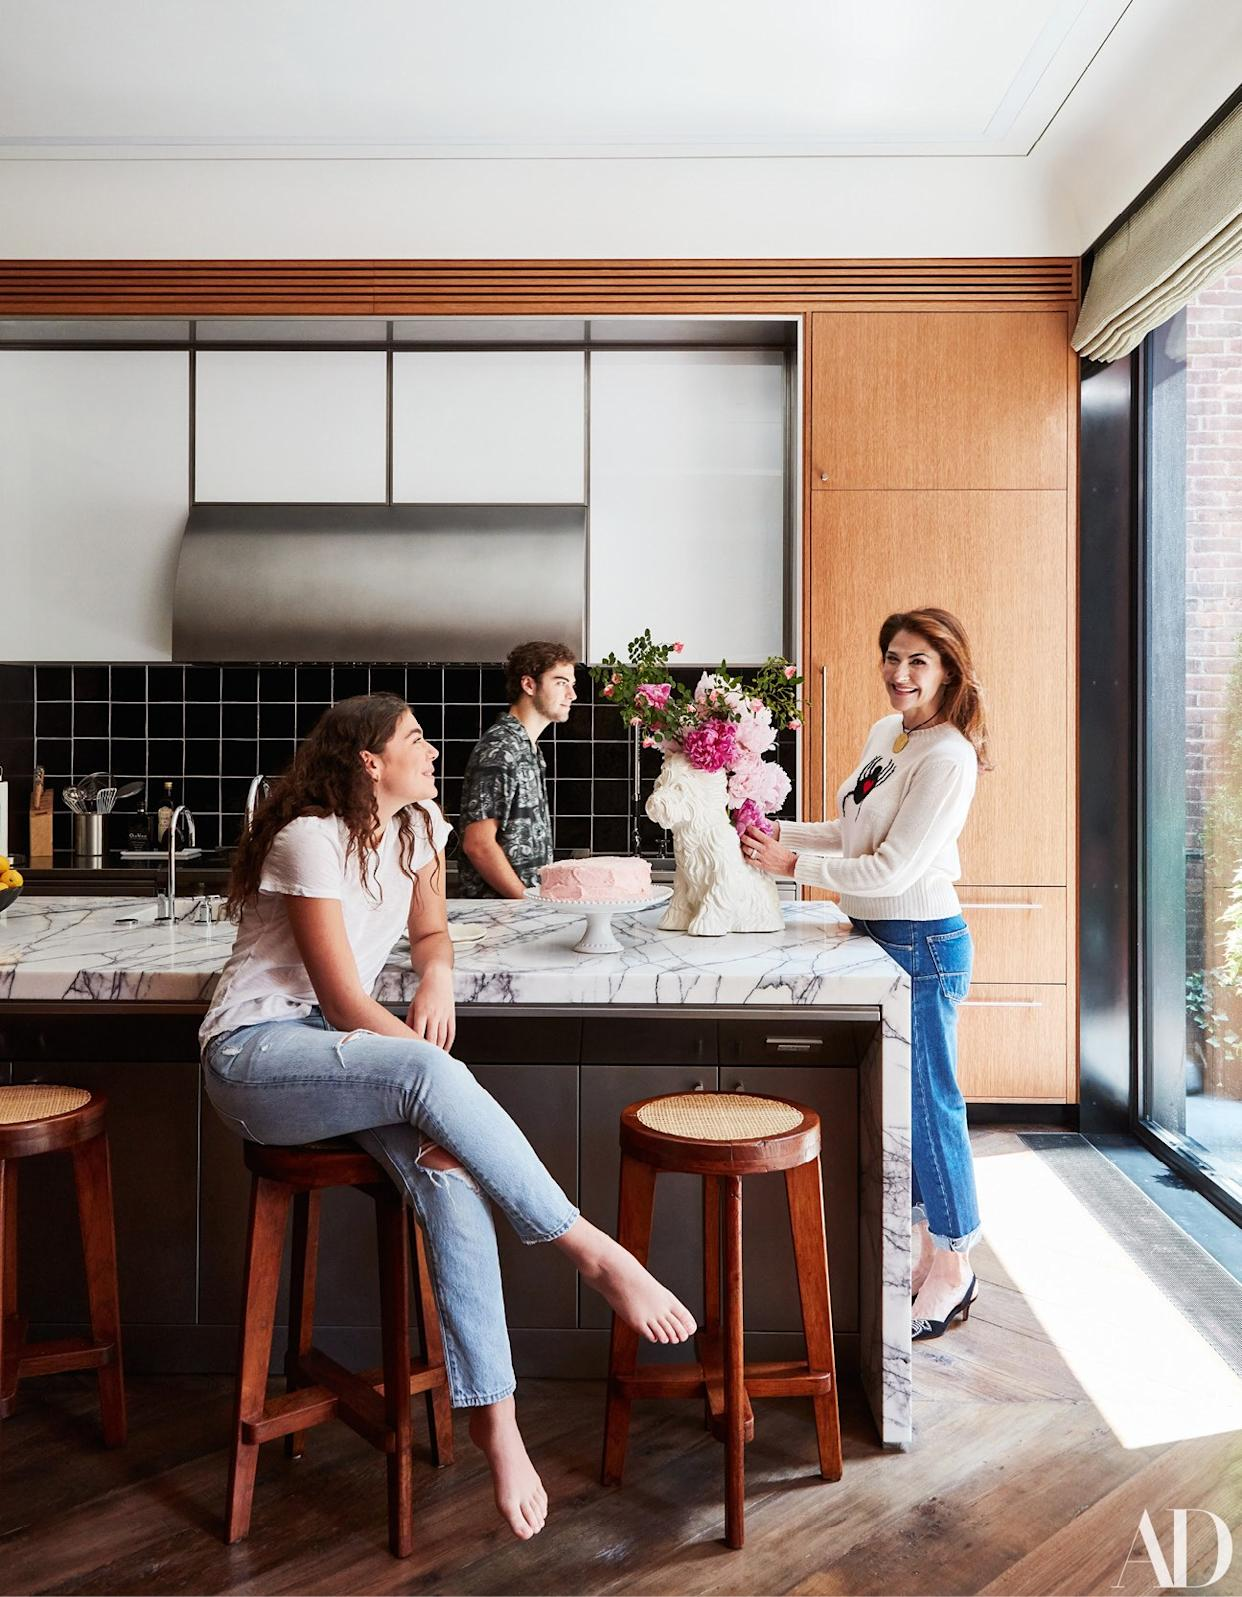 """<div class=""""caption""""> Allison, wearing a Dior sweater and jeans, and two of her children gather around the kitchen island. </div> <cite class=""""credit"""">Fashion styling by Marina Muñoz.</cite>"""